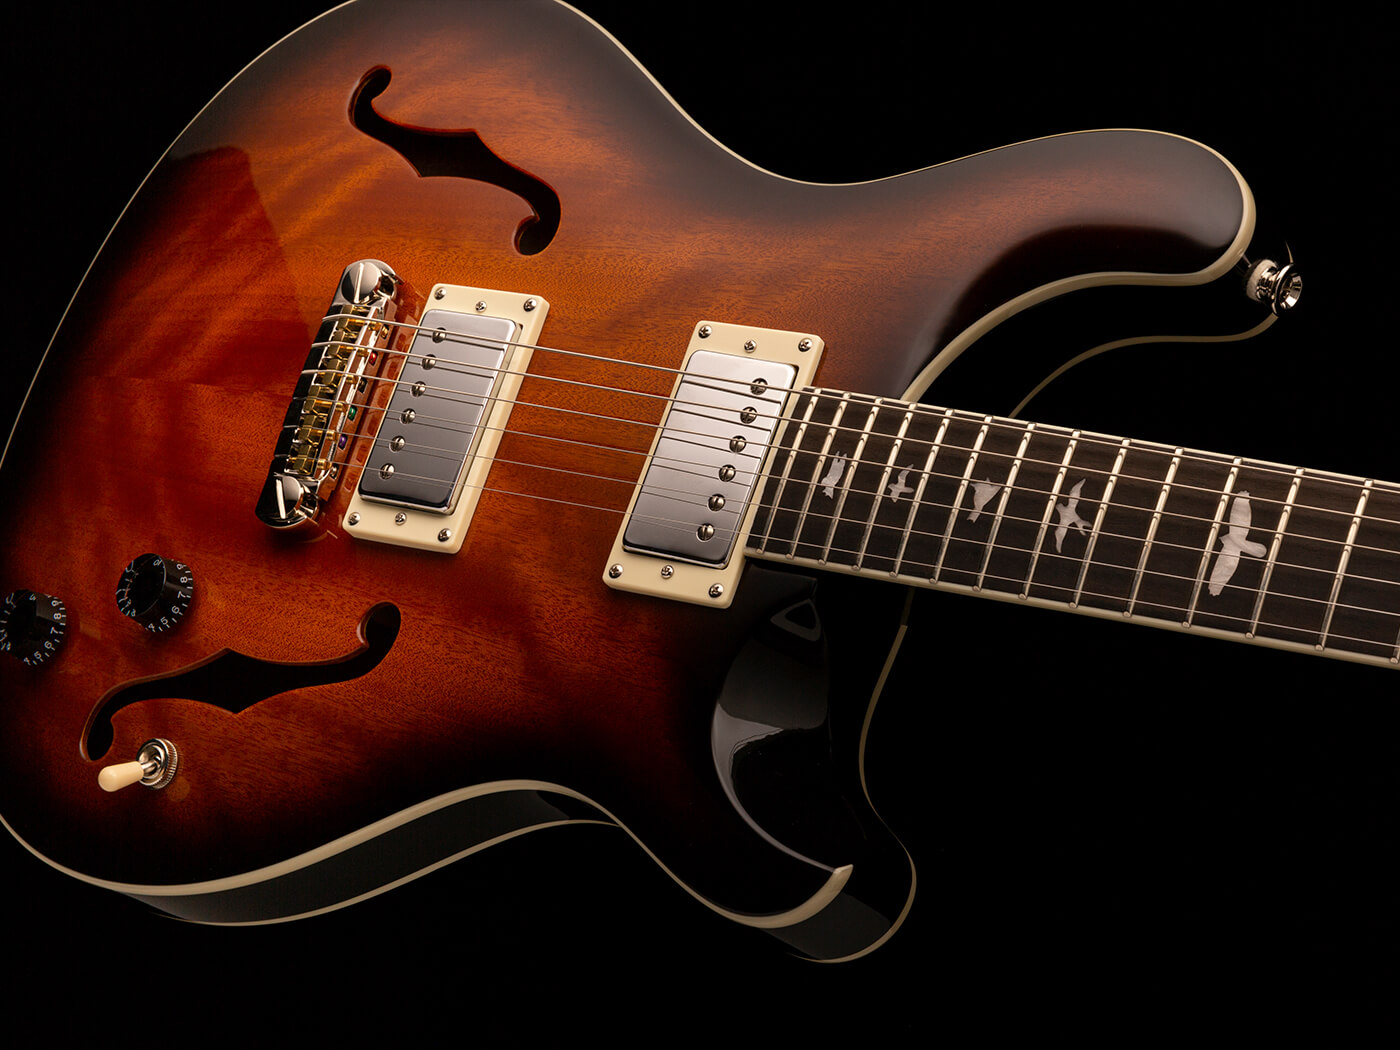 The PRS SE Hollowbody Standard, in Tobacco Burst